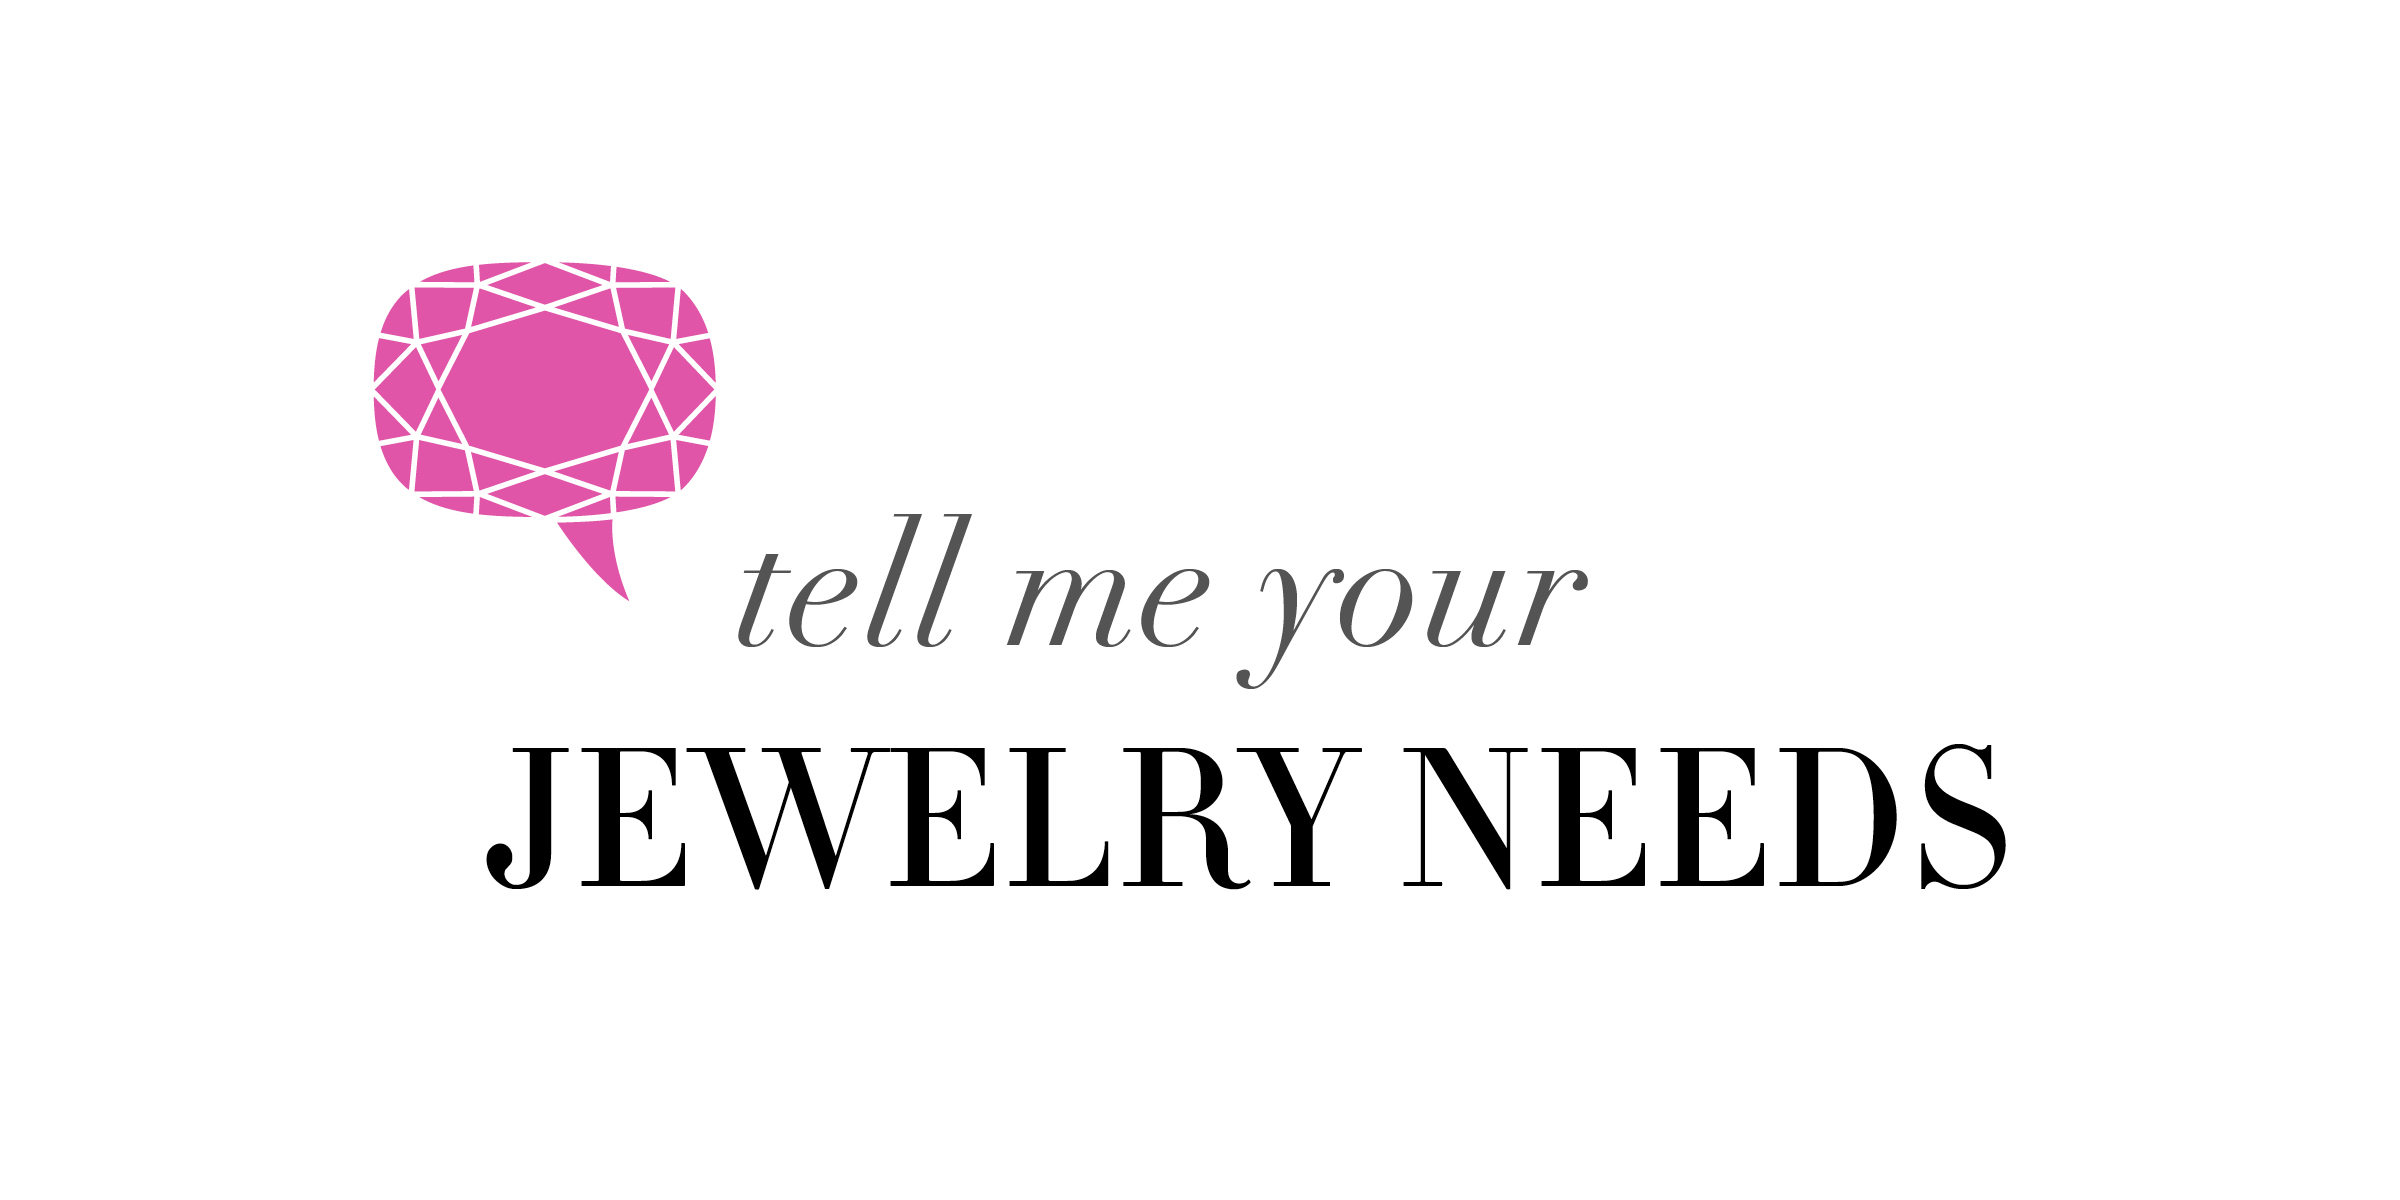 Email Melissa with your jewelry wardrobe needs or questions